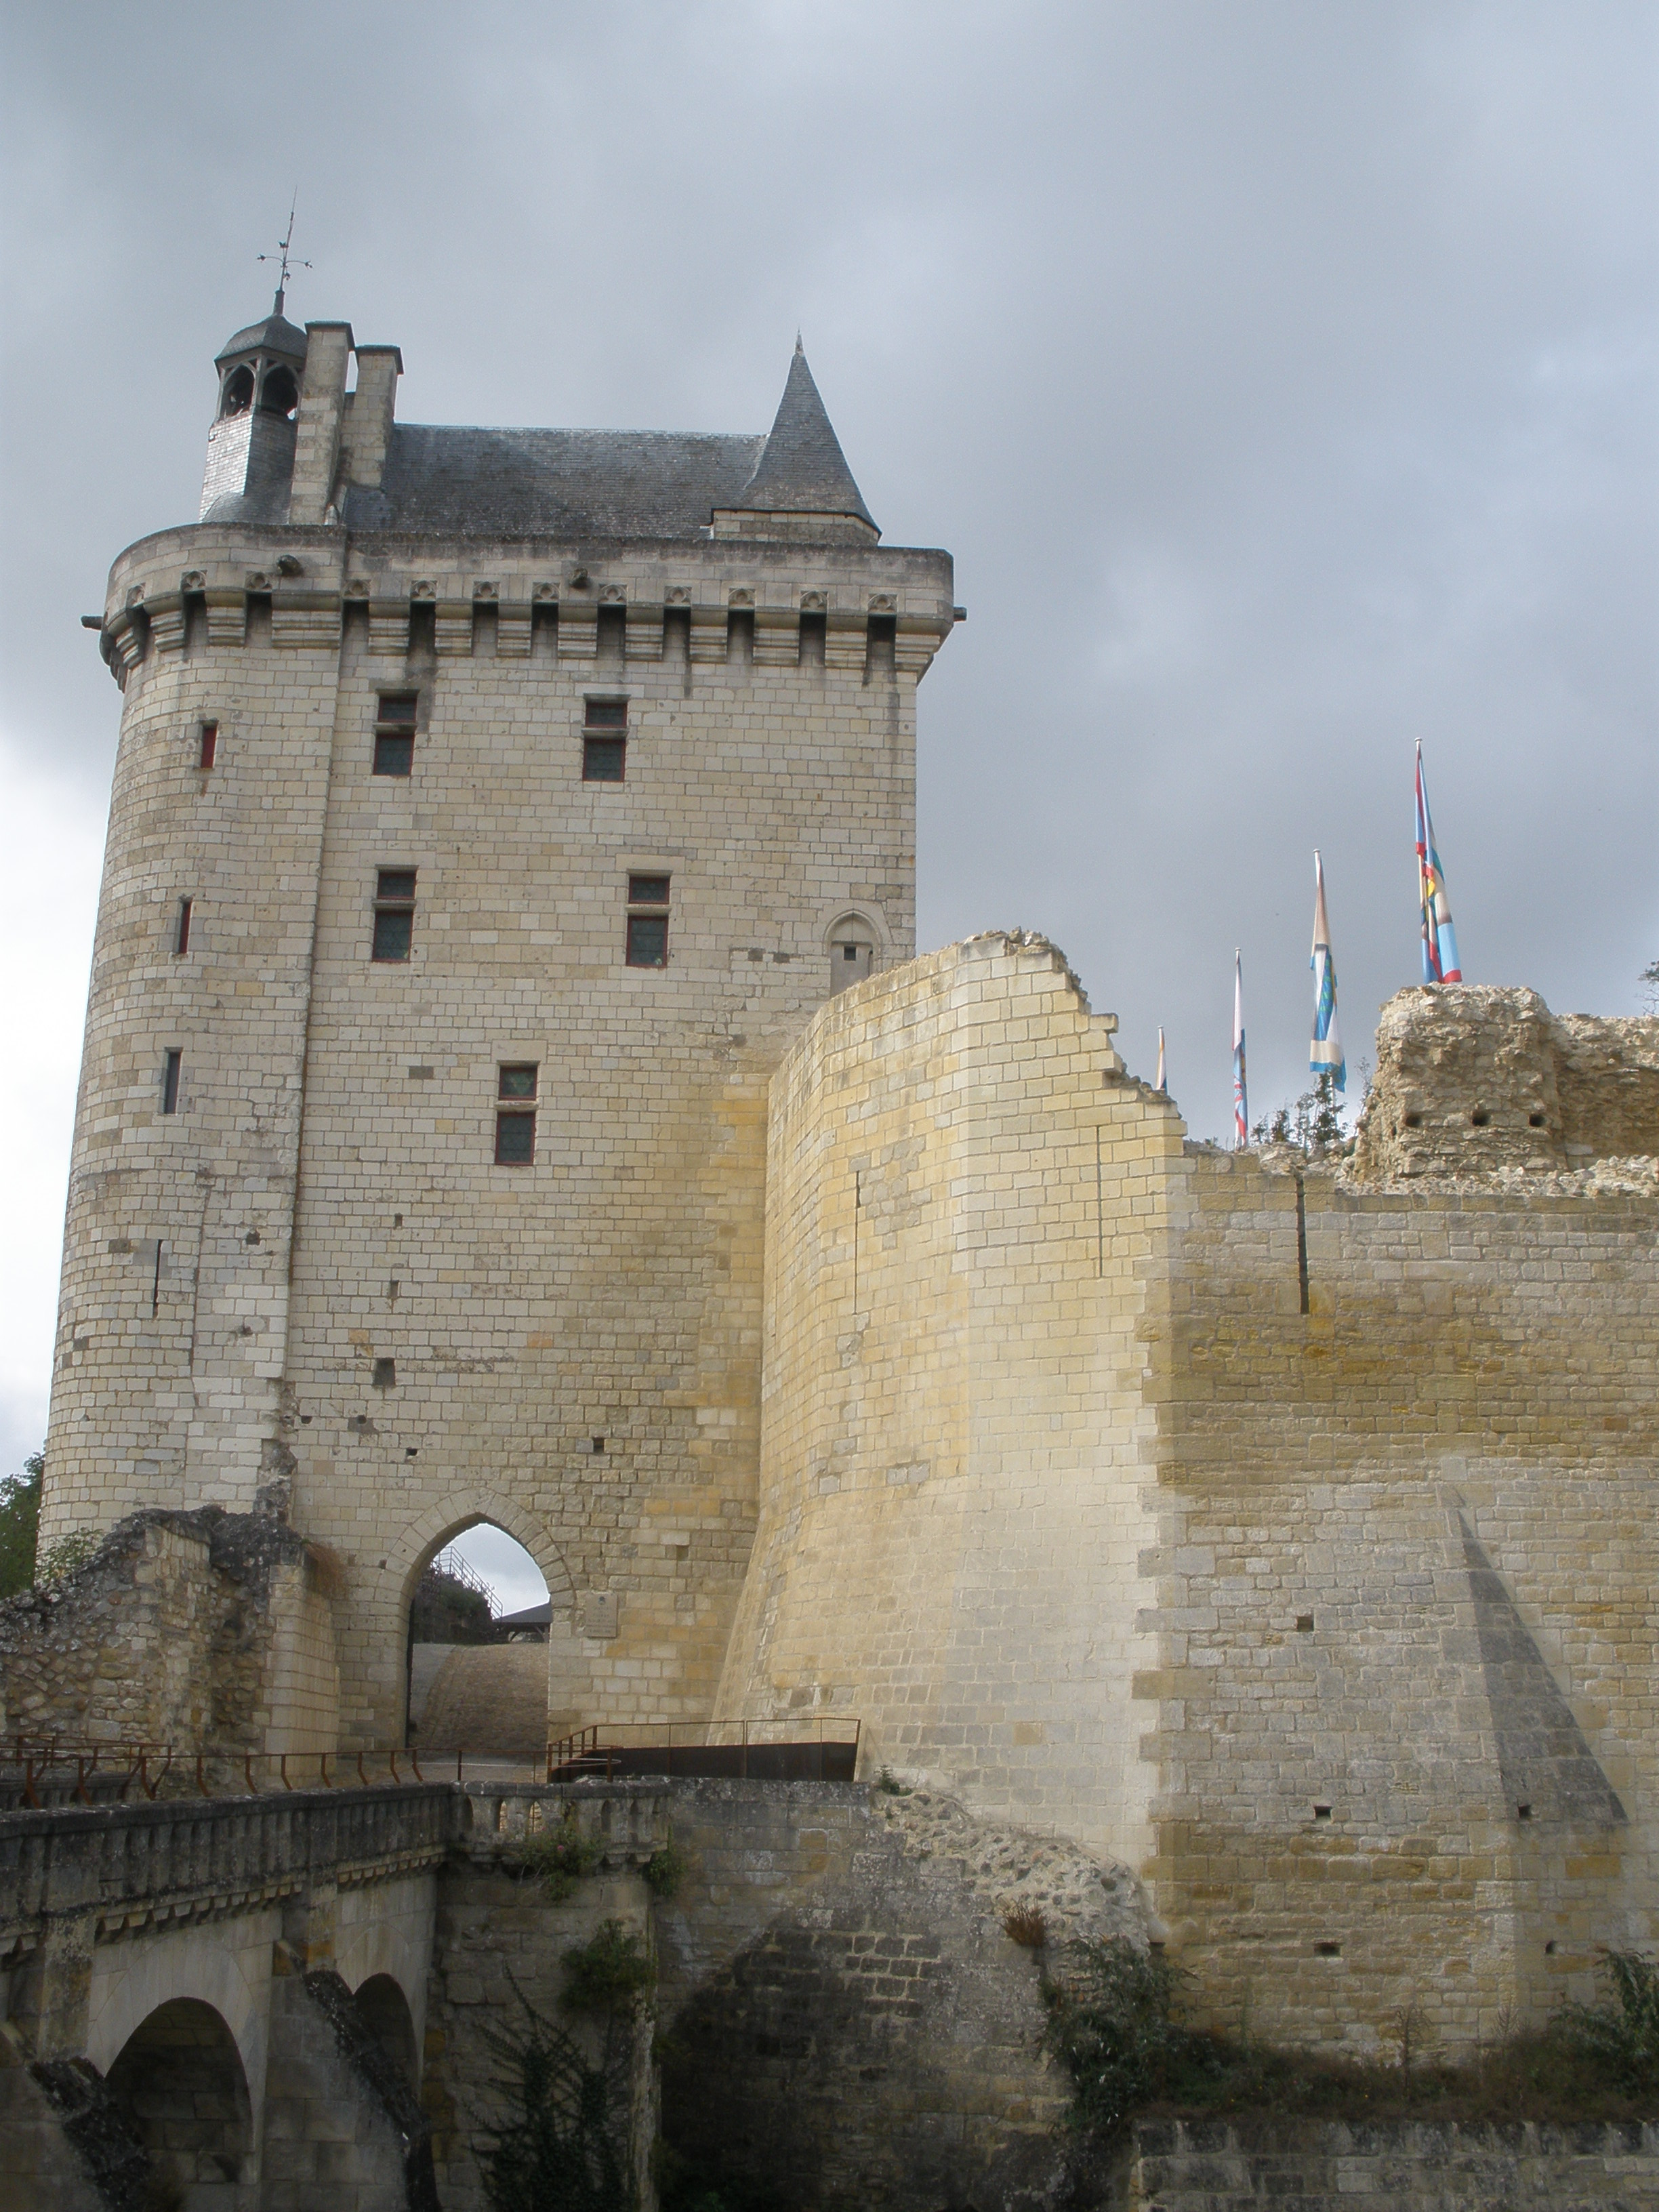 Joan of Arc Castle The Life of Joan of Arc as